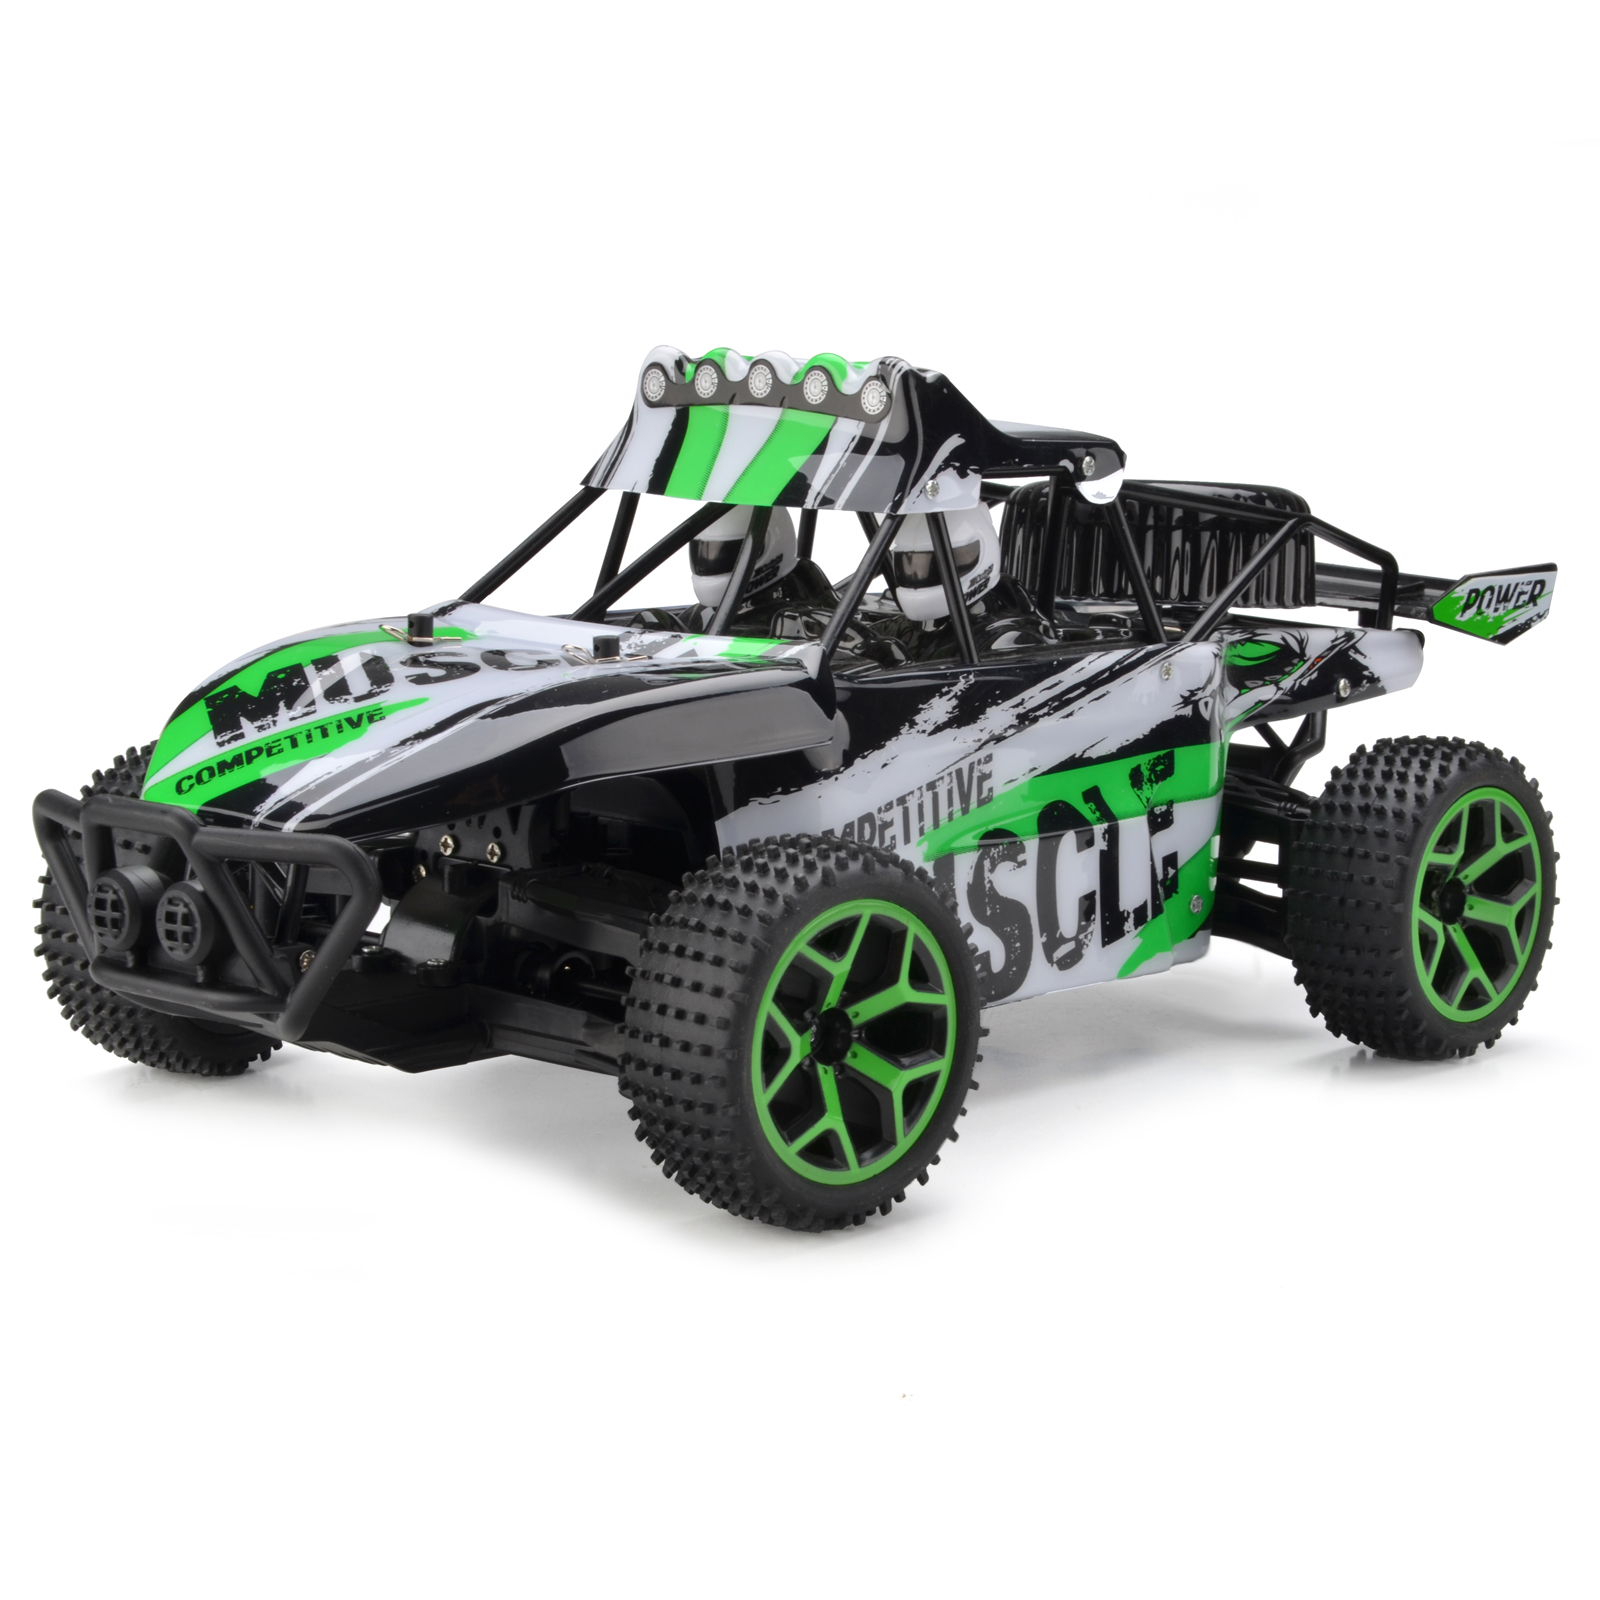 Zhencheng 4WD 1/18 Scale RC Truck Off-Road High Speed Car Buggy Toy SUV Green